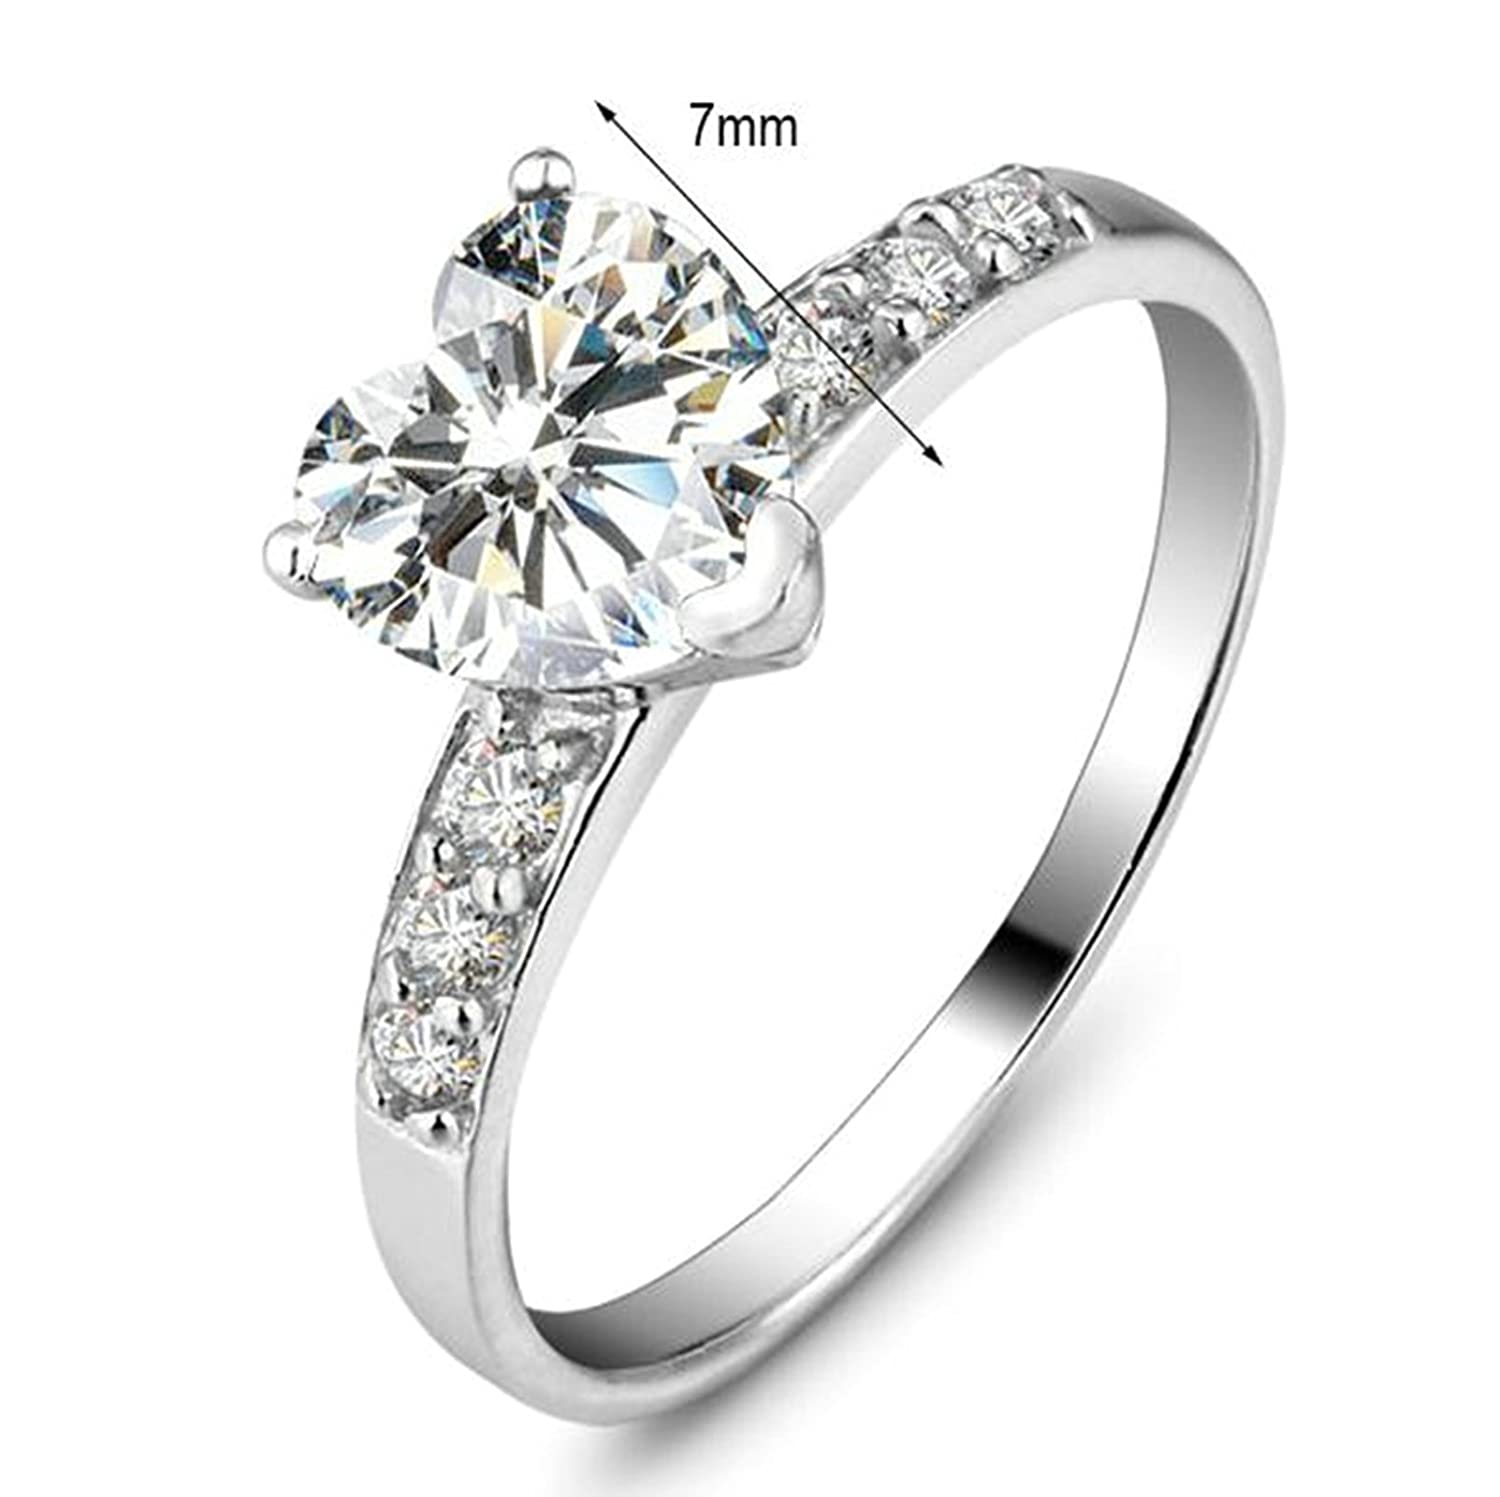 Amazon.com: Beydodo Women Silver Rings, Promise Ring for Wedding Solitaire Ring Heart Cut Cubic Zirconia Size 6-8: Jewelry